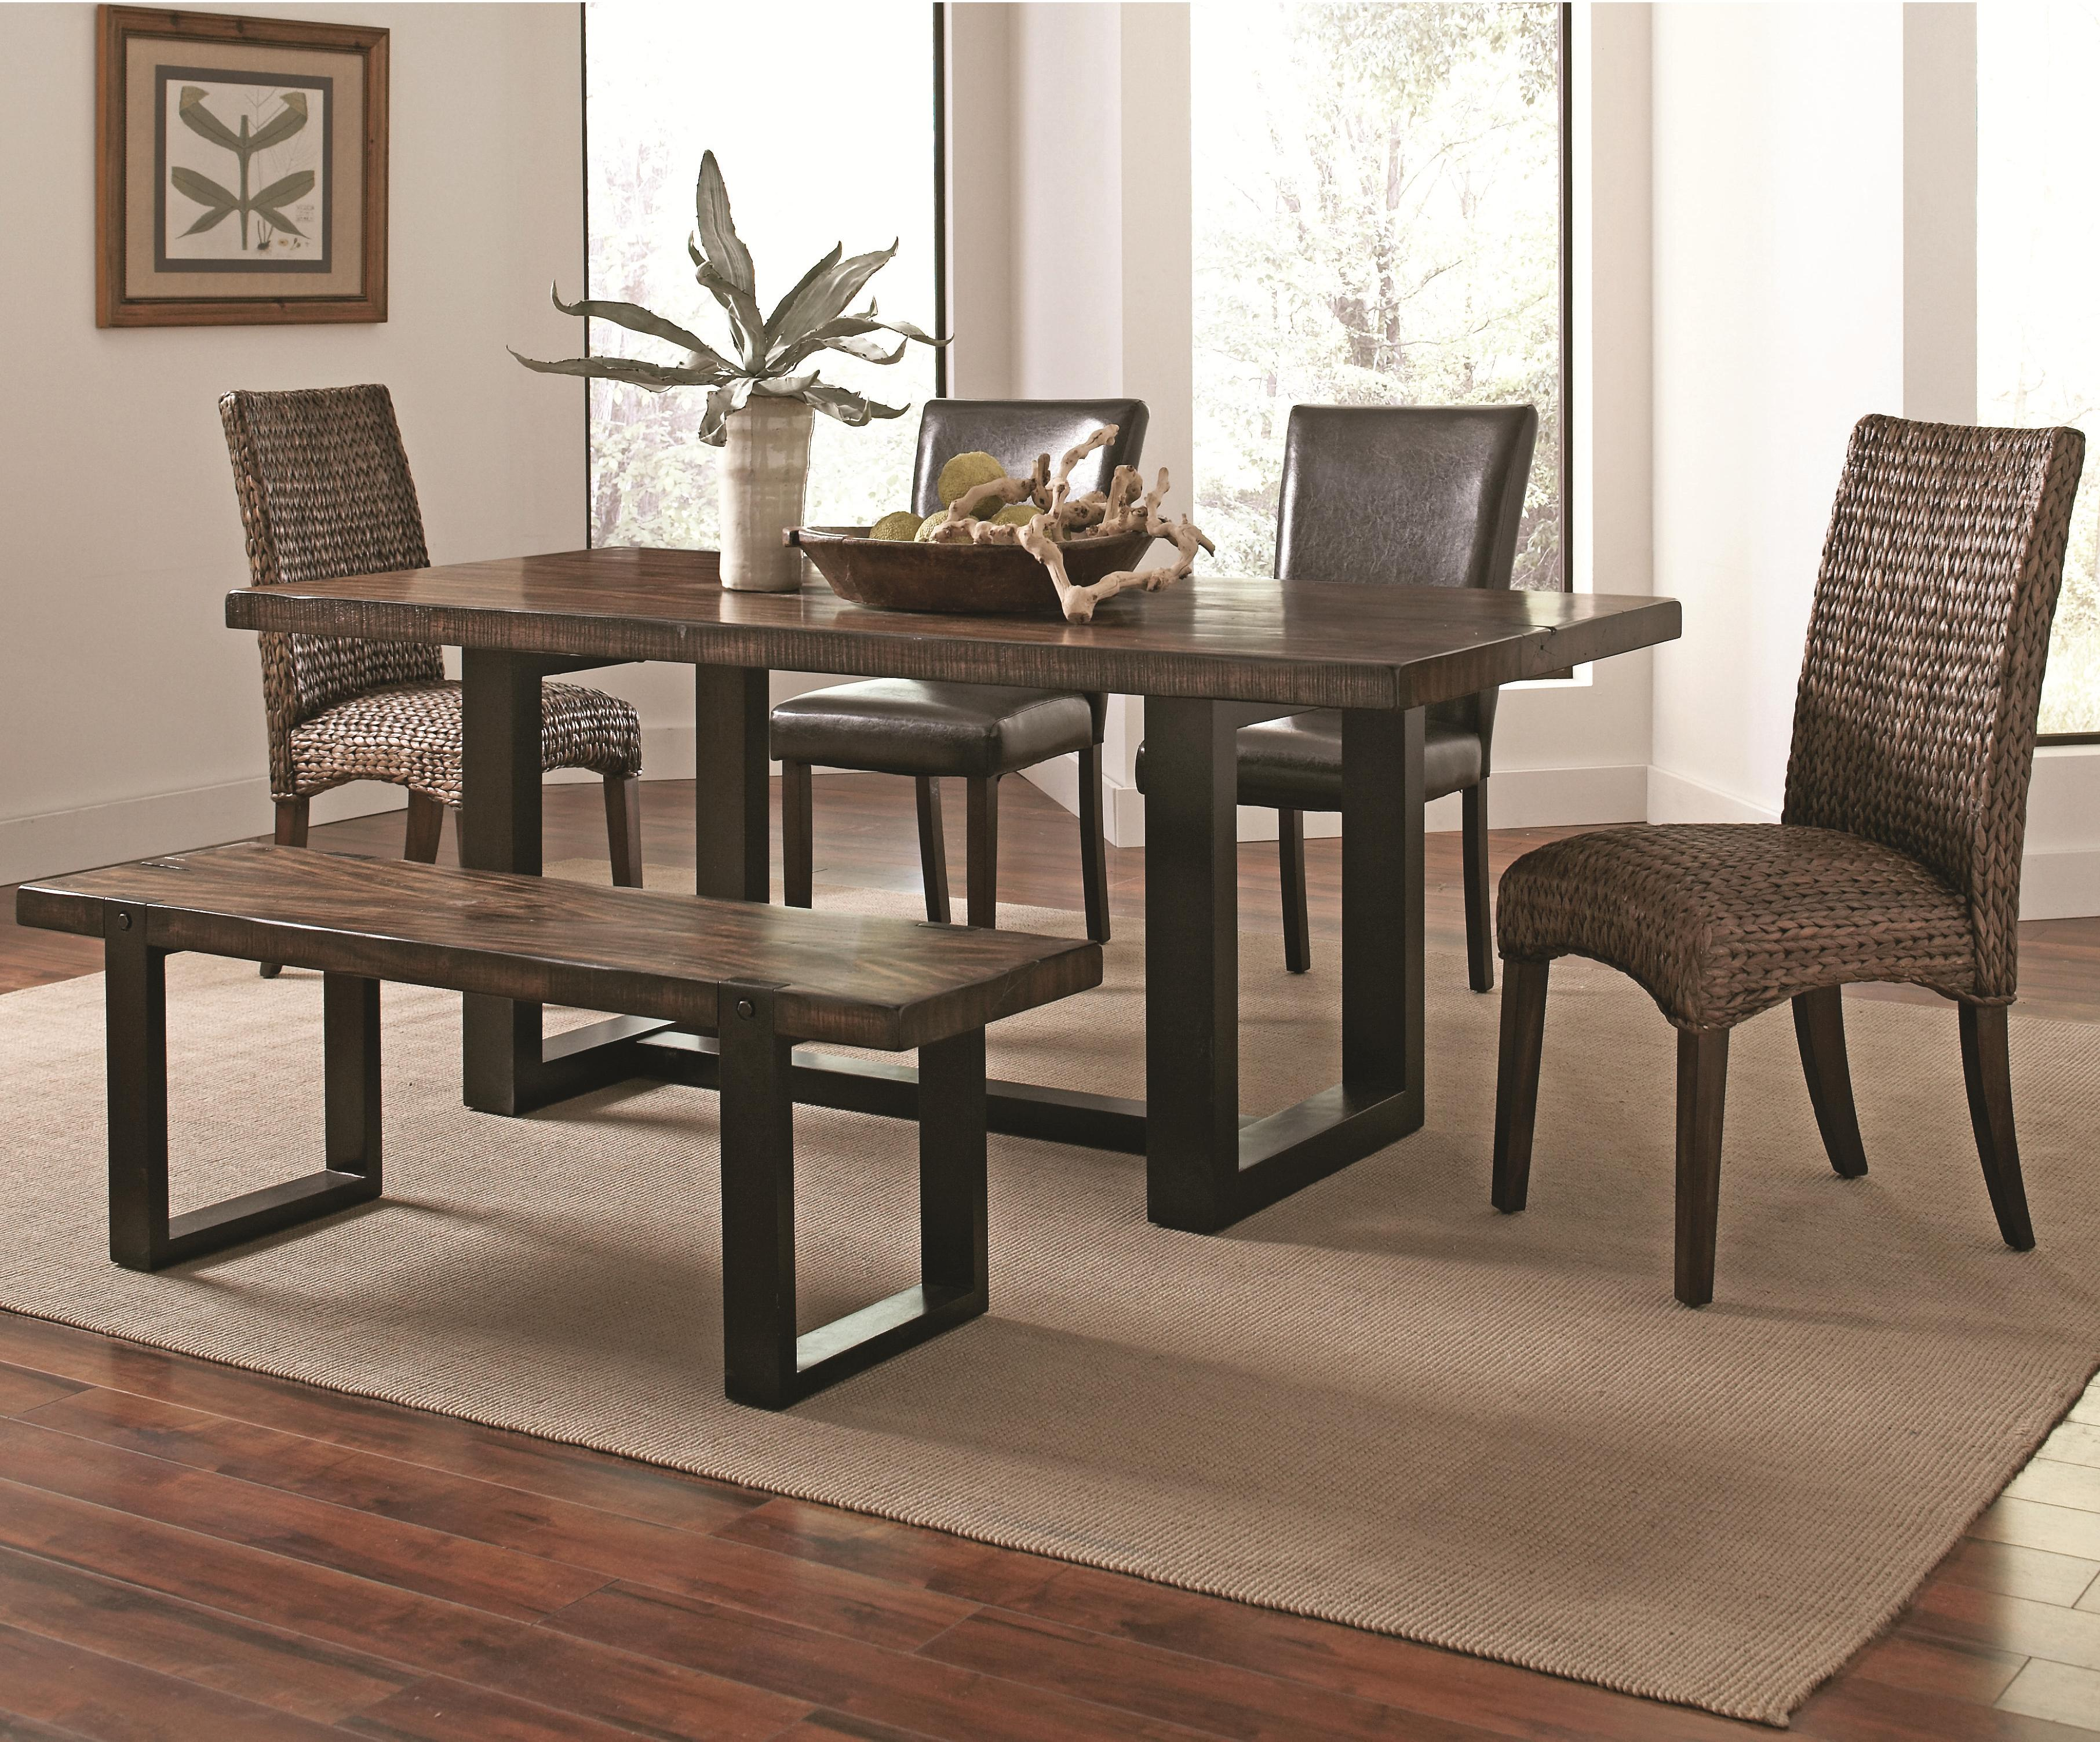 Coaster Westbrook Dining Casual Rustic 6 Piece Mix-and-Match ...